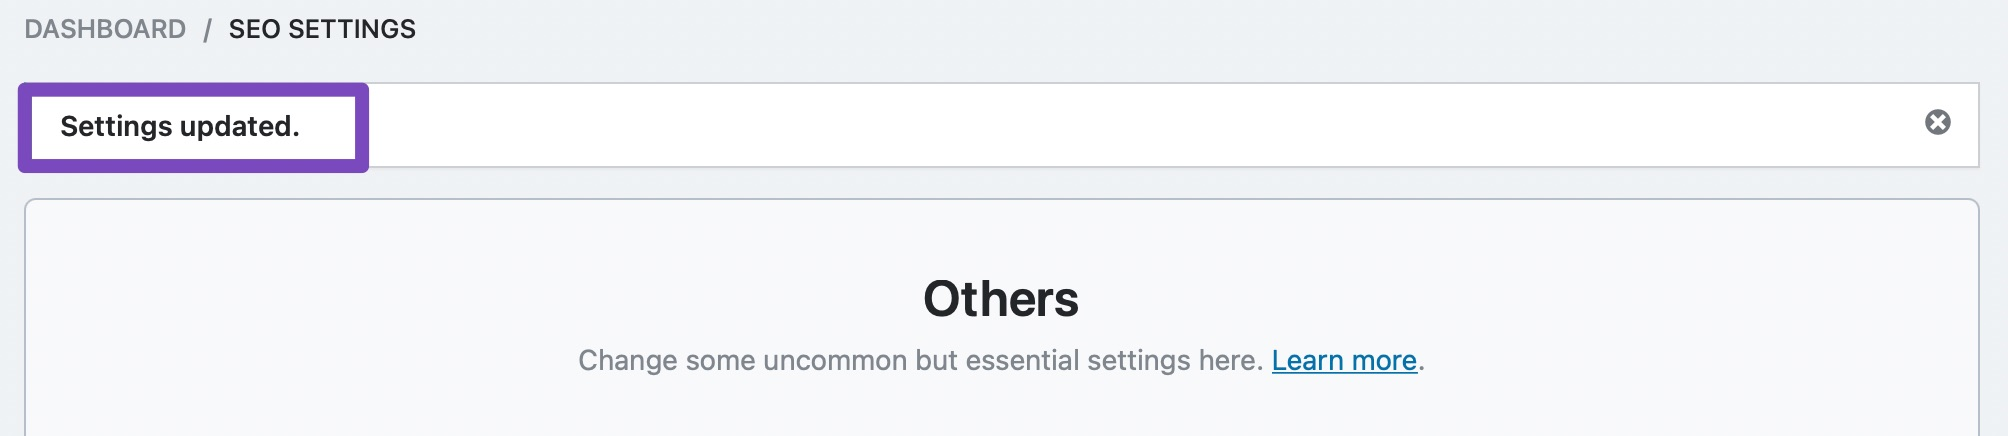 settings updated confirmation